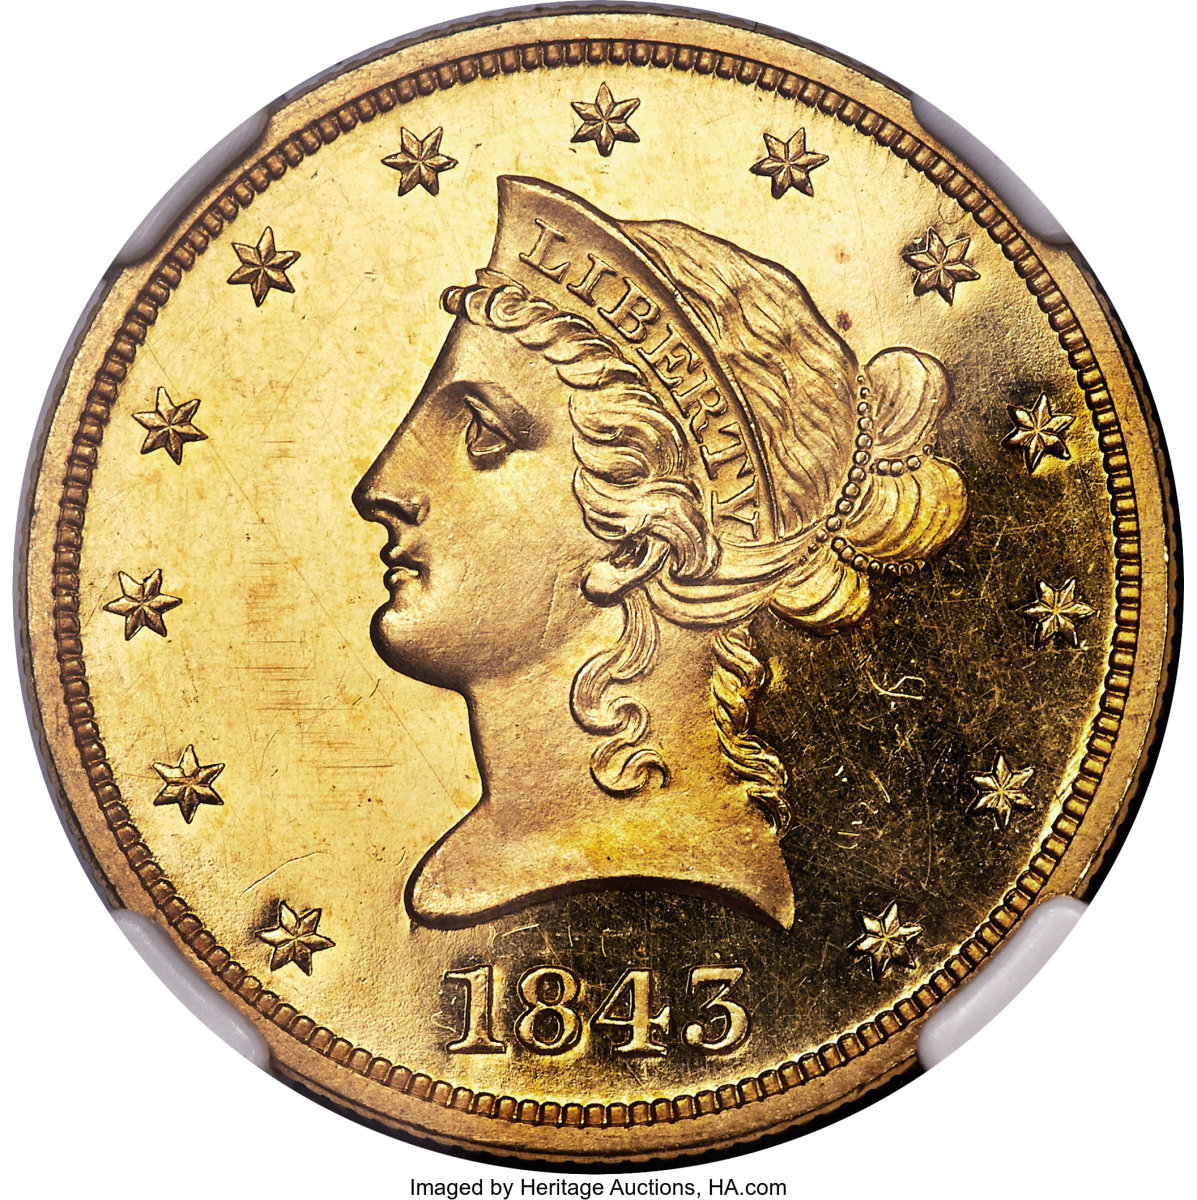 This ultra-rare 19th century gold proof 1843 ten dollar, in PR64 Deep Cameo sold for an astounding $480,000. (Image courtesy of Heritage Auctions)